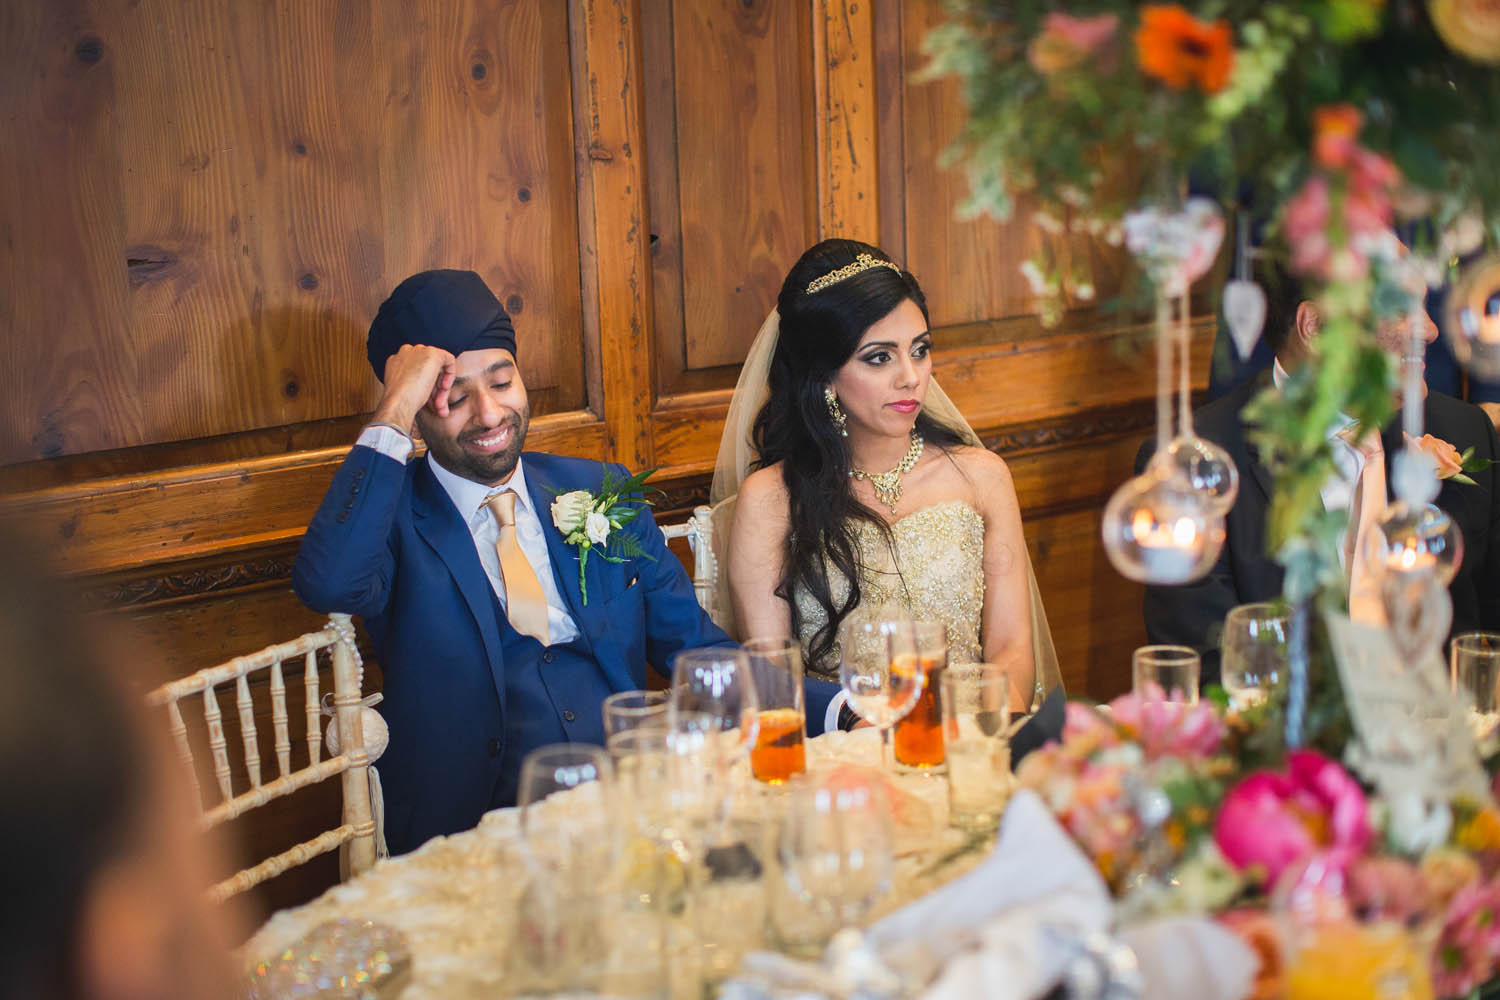 wedding_in_london_59.jpg